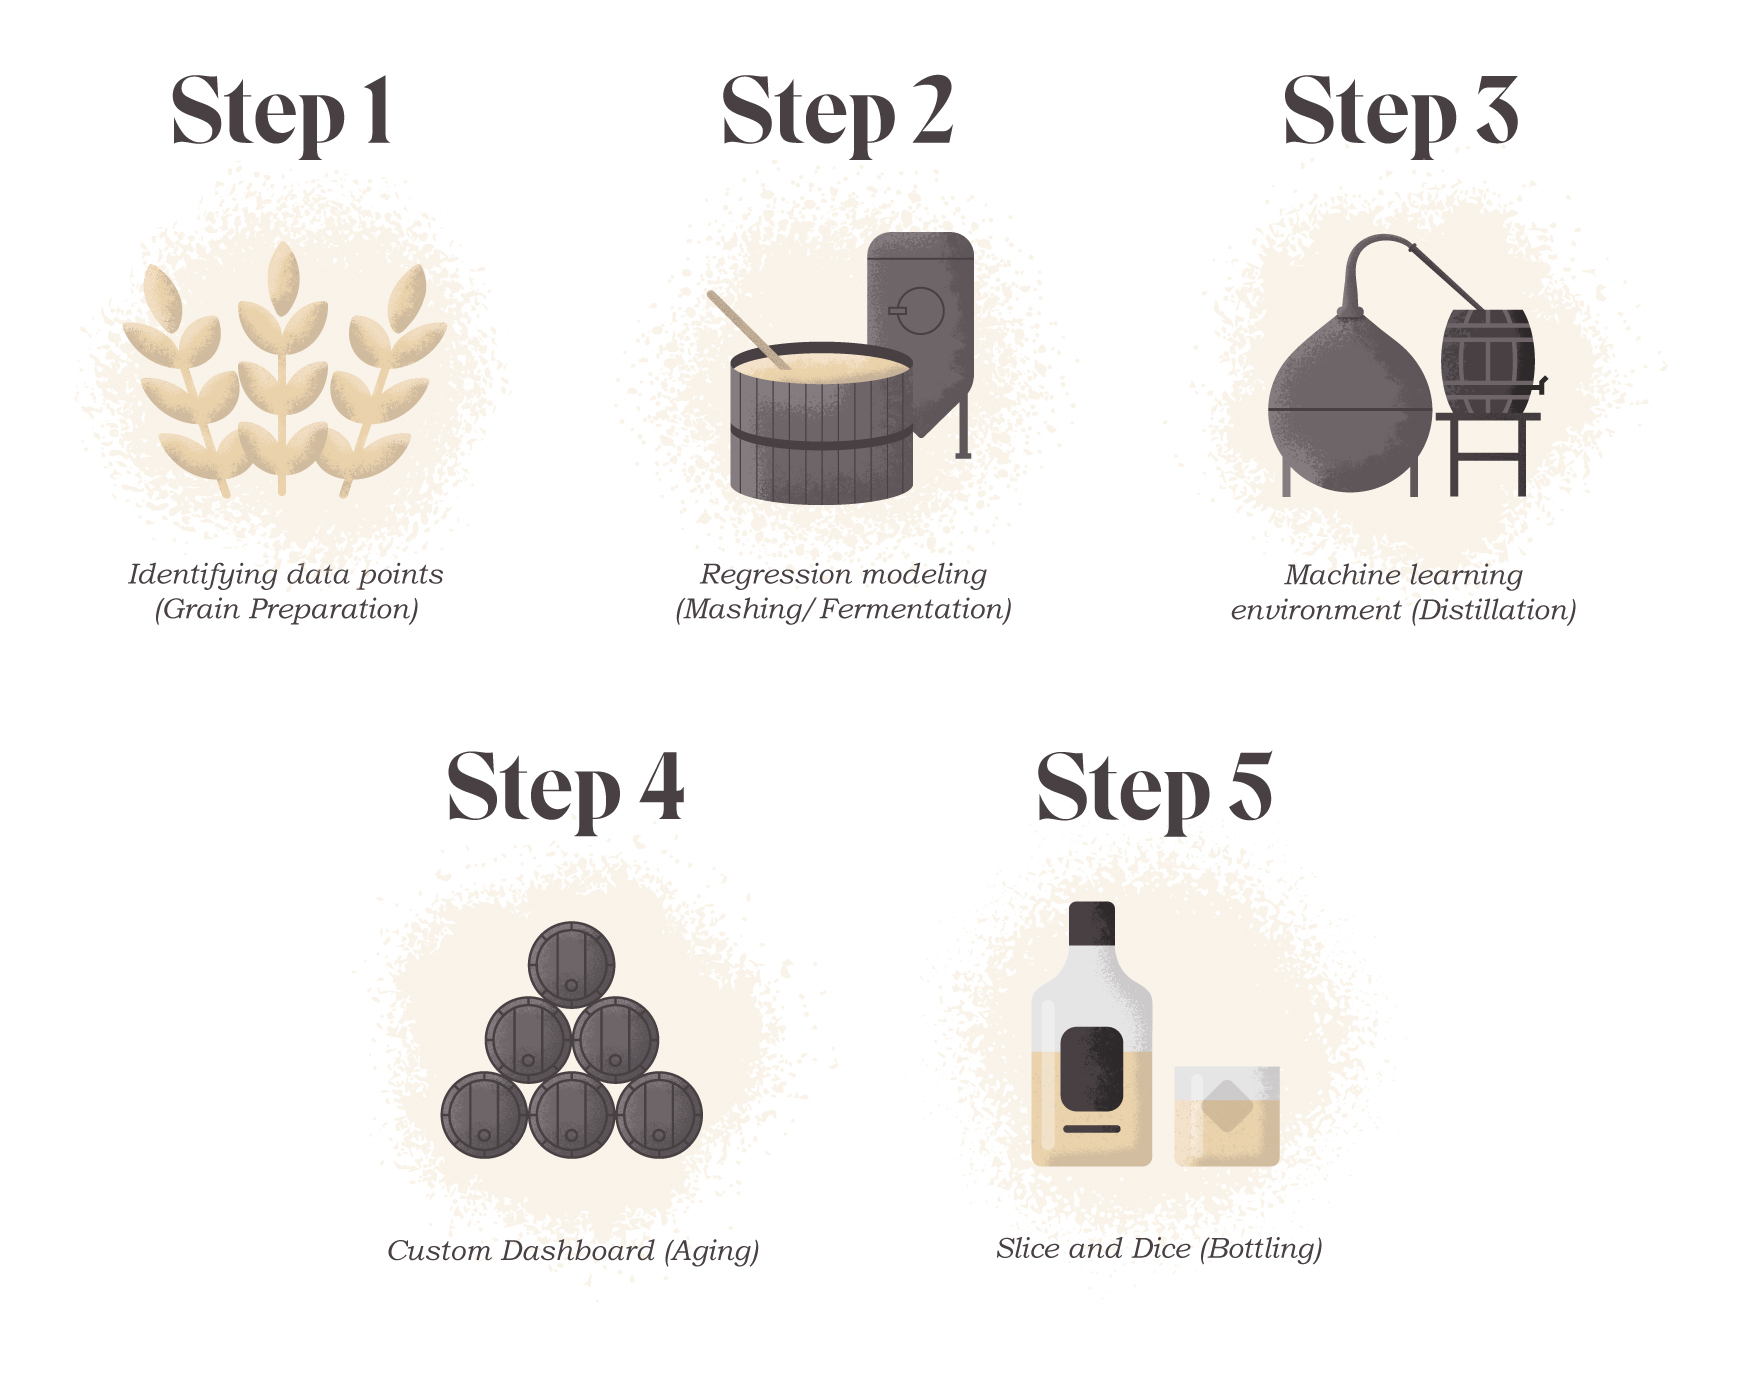 Graphic of the five steps to our O2O strategy, illustrated based on a whiskey distillation process.